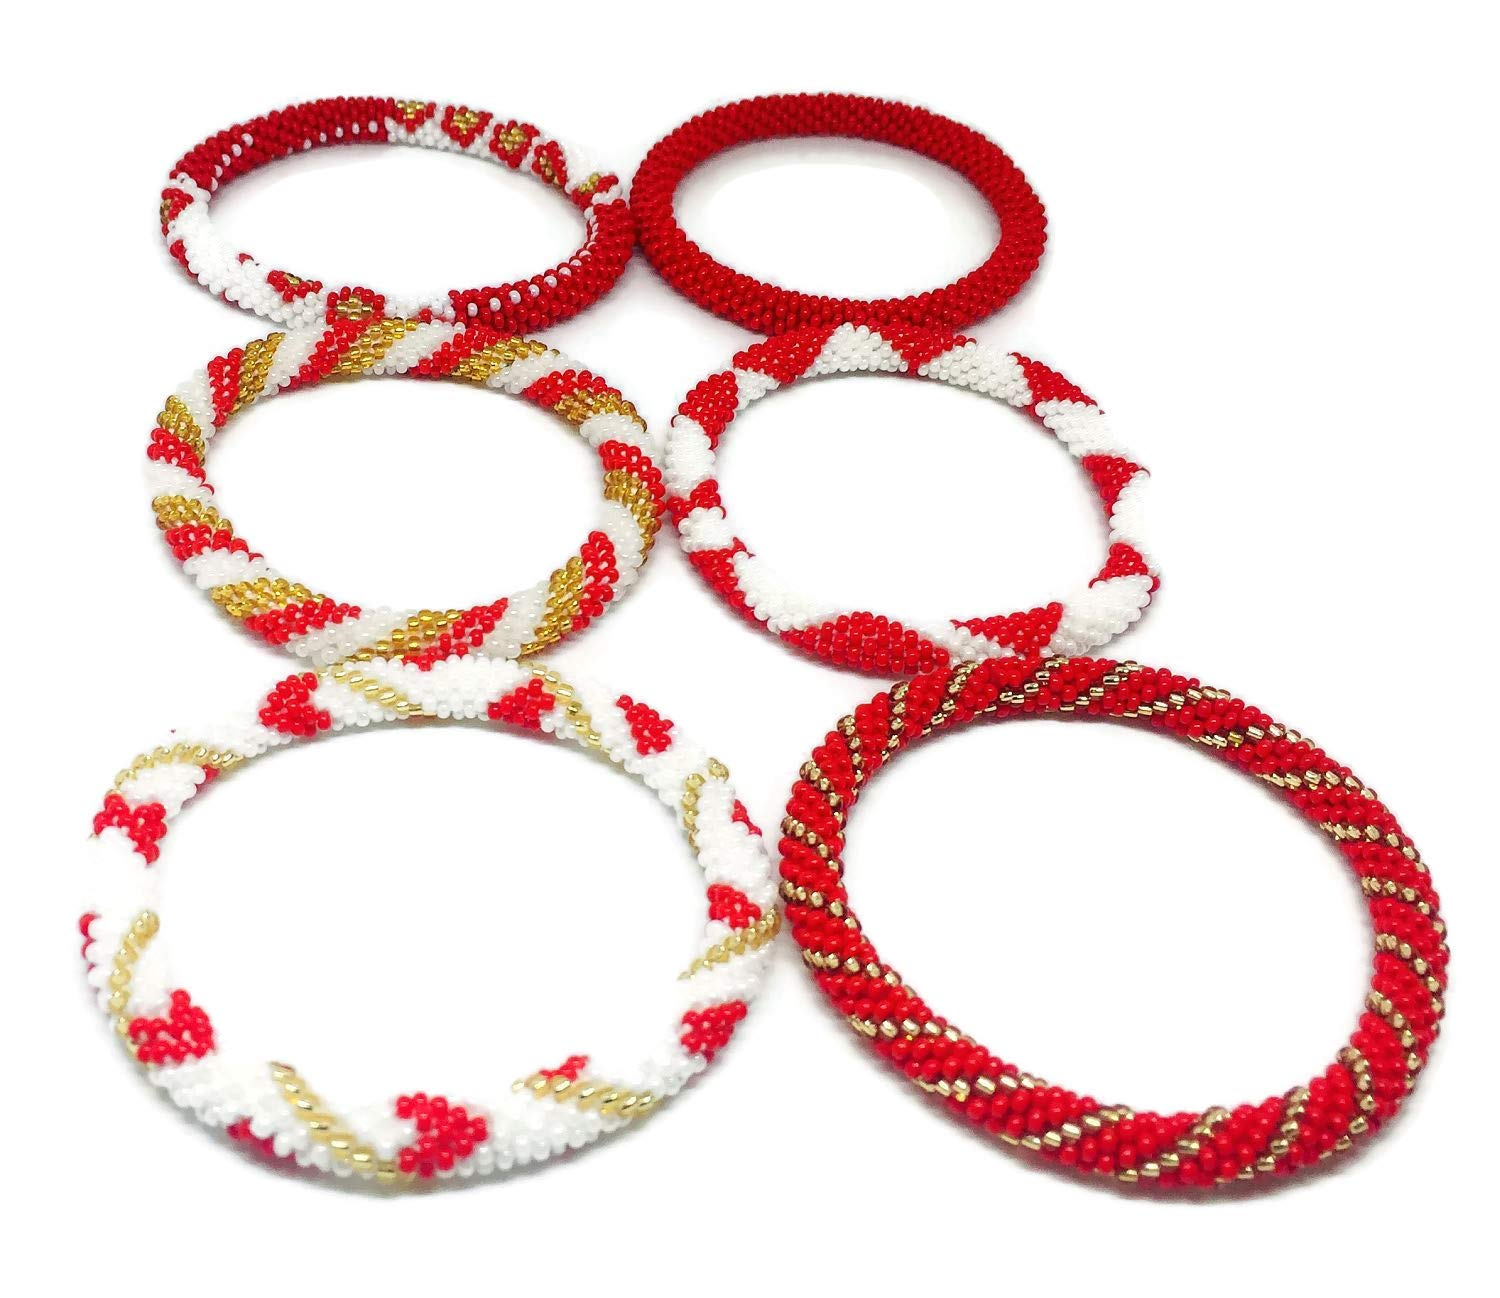 Kissed Karma Nepalese Roll on Hand Beaded Glass Seed Bead Bracelet. 6 Pcs Set. Premium Red Color Mix. (Red) by Kissed Karma (Image #3)